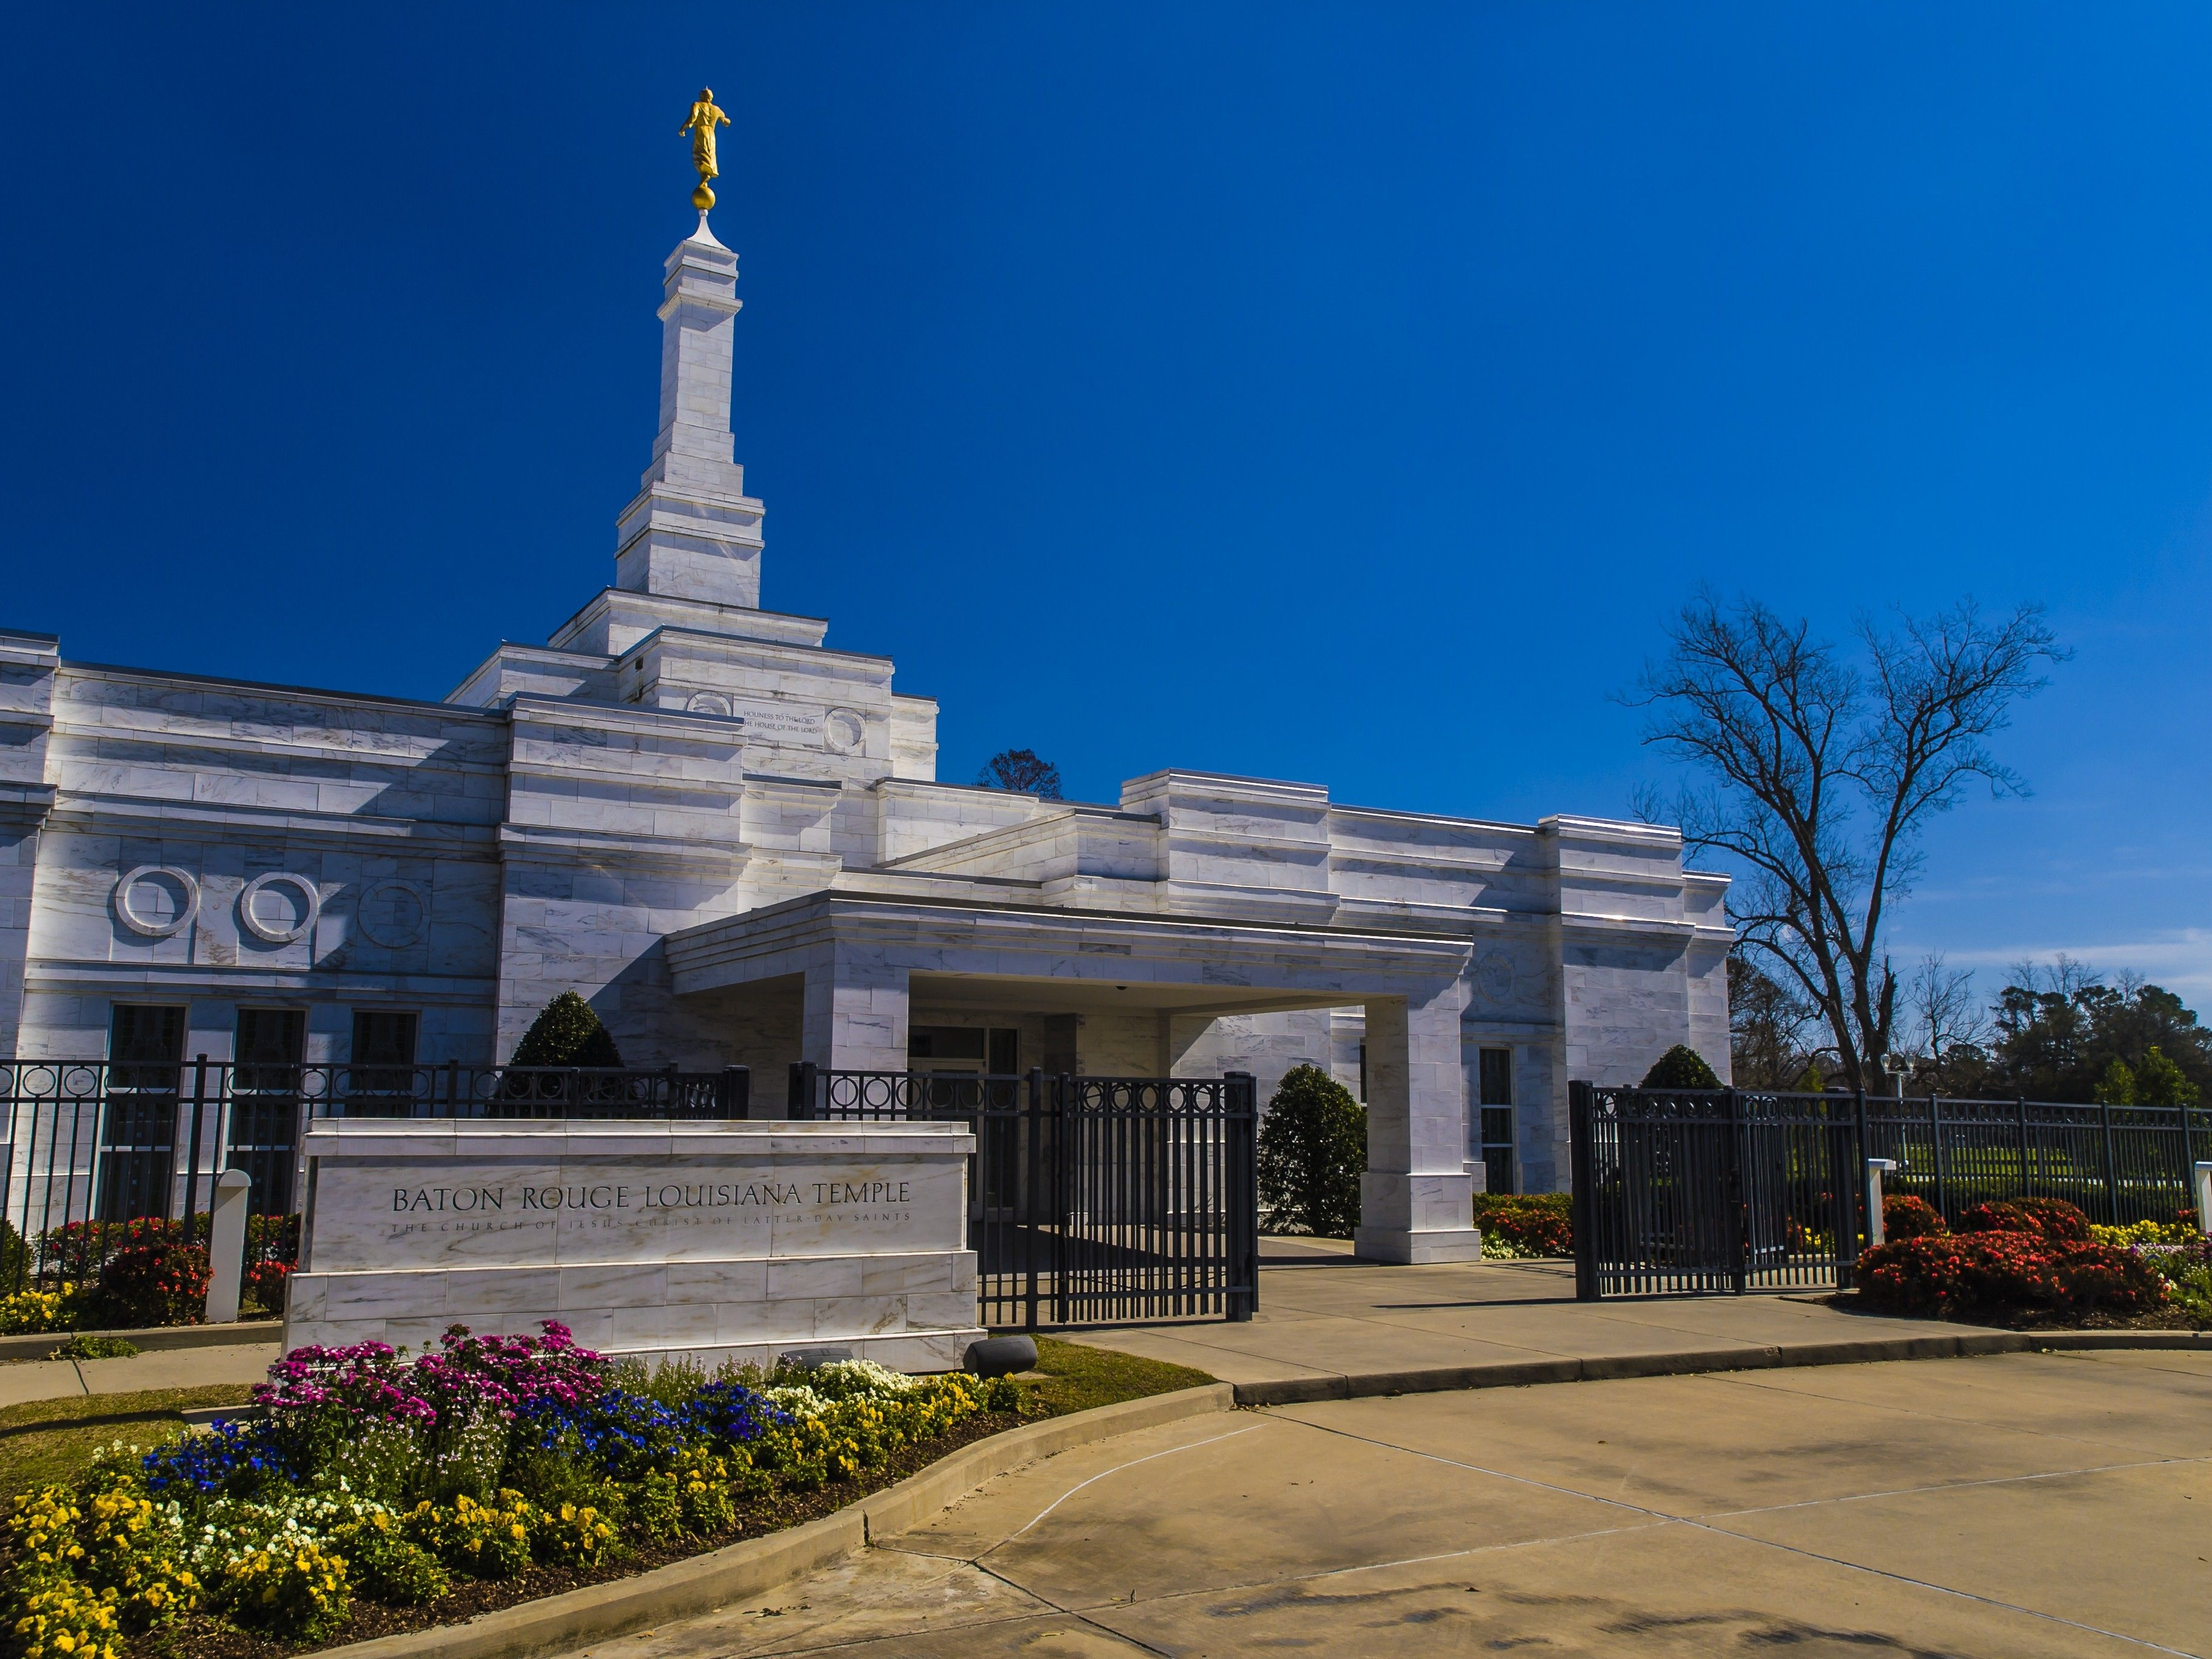 The main entrance to the Baton Rouge Louisiana Temple welcomes members.